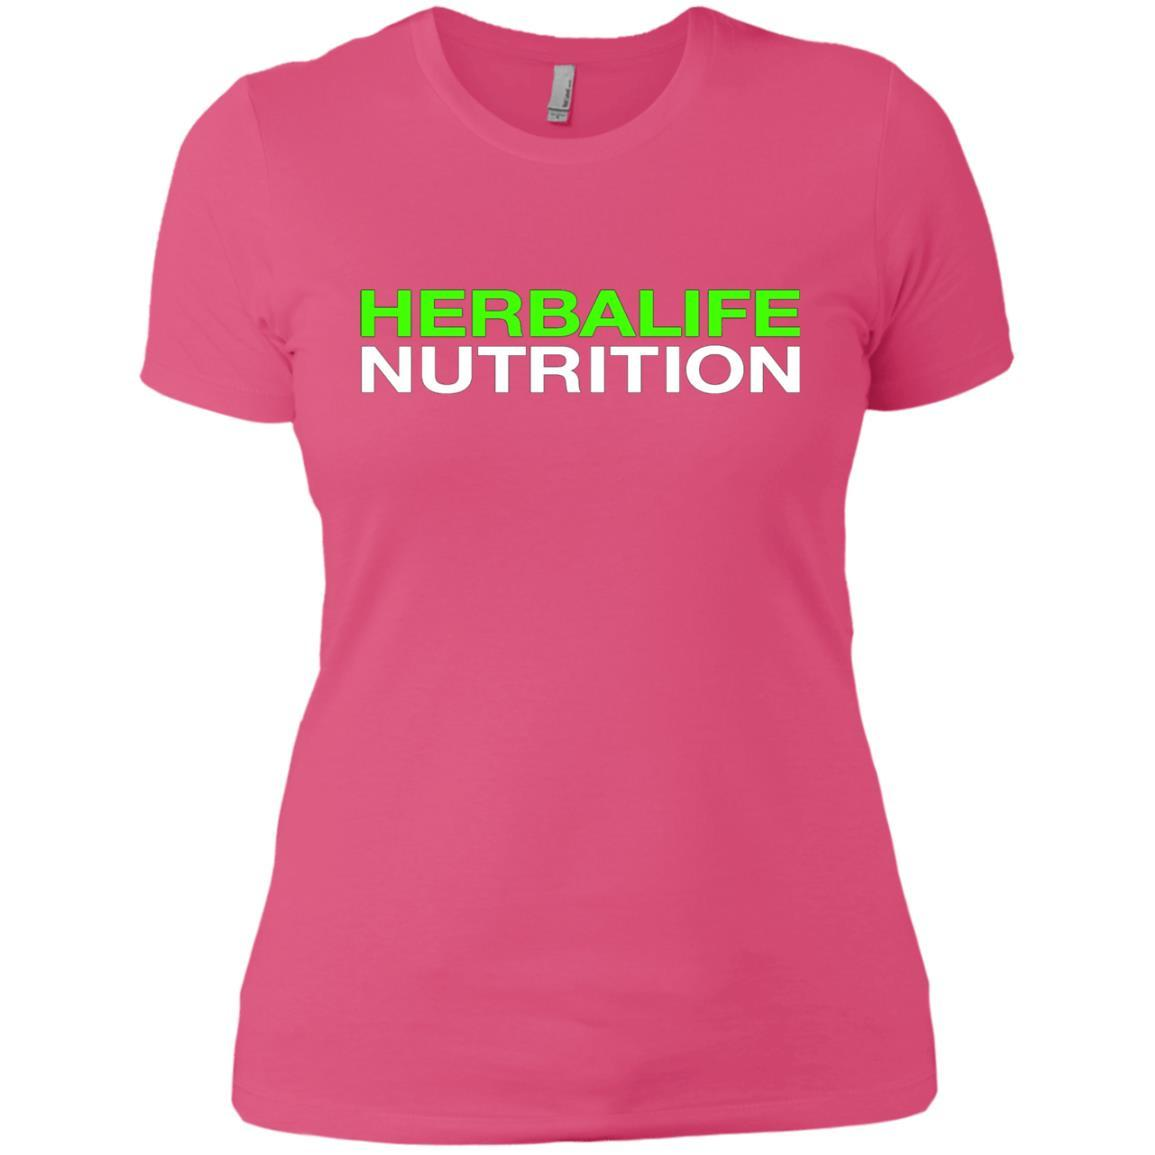 a57ad225 HERBALIFE NUTRITION - Ladies' Boyfriend T-Shirt Style / Color / Size